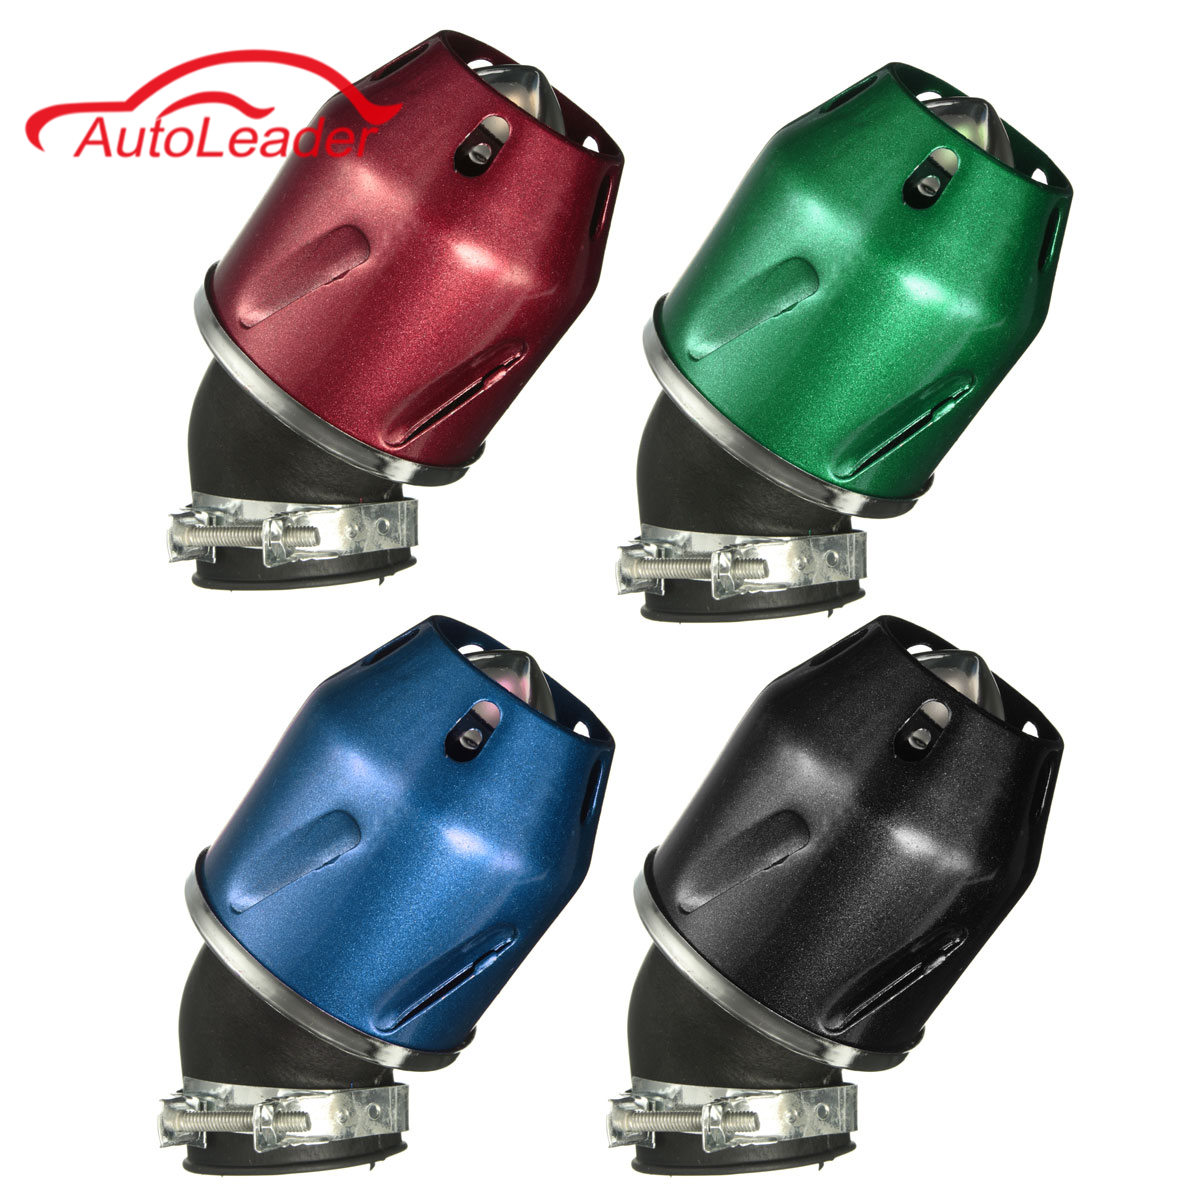 35mm Bullet Air Filter Cleaner Intake 50cc Motorcycle Scooter Dirt Pit ATV Bike Green Black Blue Red Silver envy ats dirt scooter red brand new complete